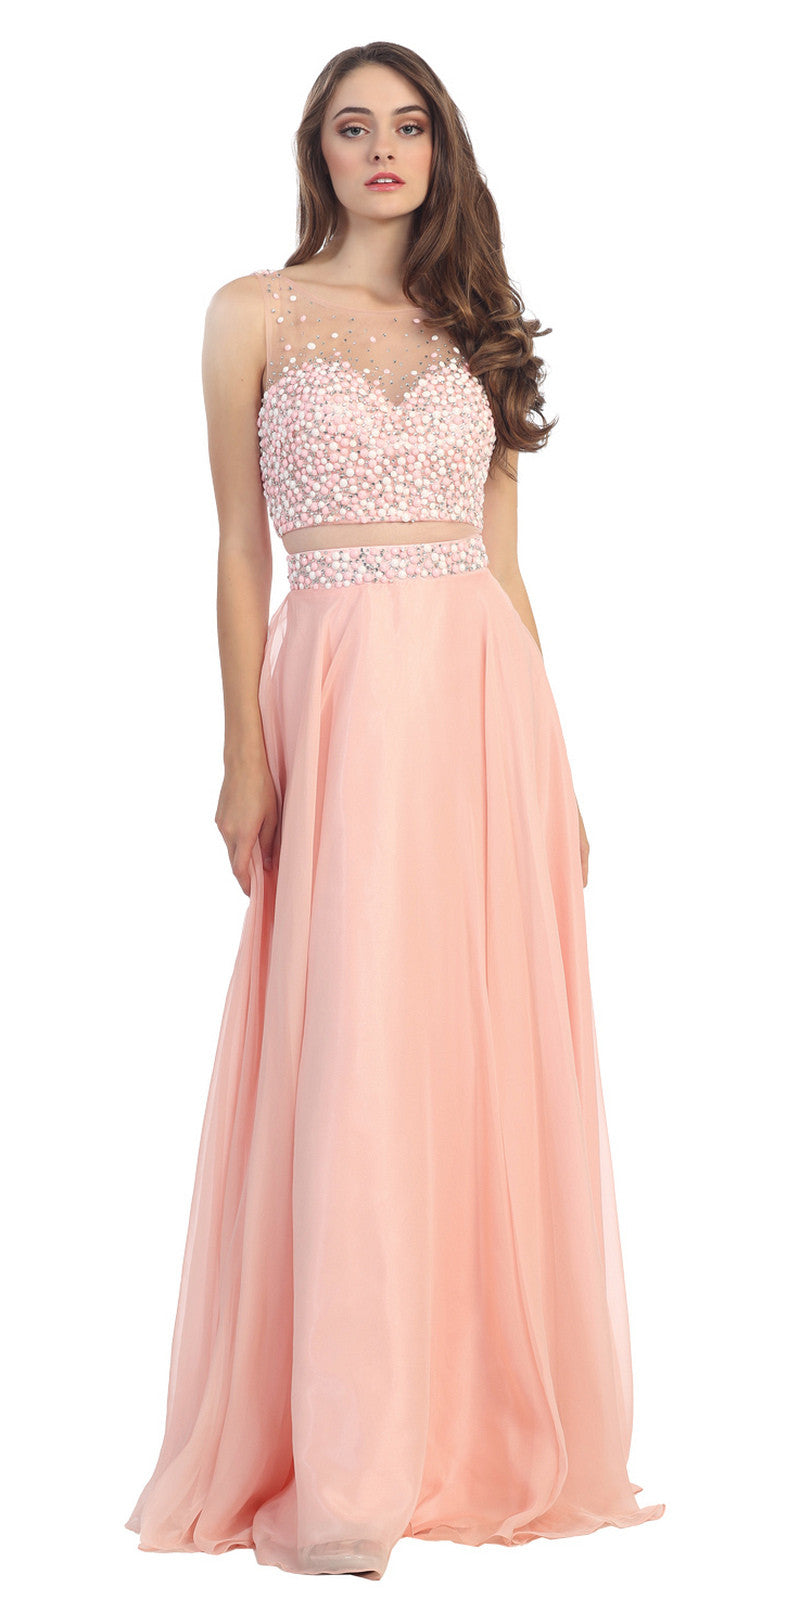 Mock Two Piece Long Chiffon Prom Dress Blush Mesh Waist